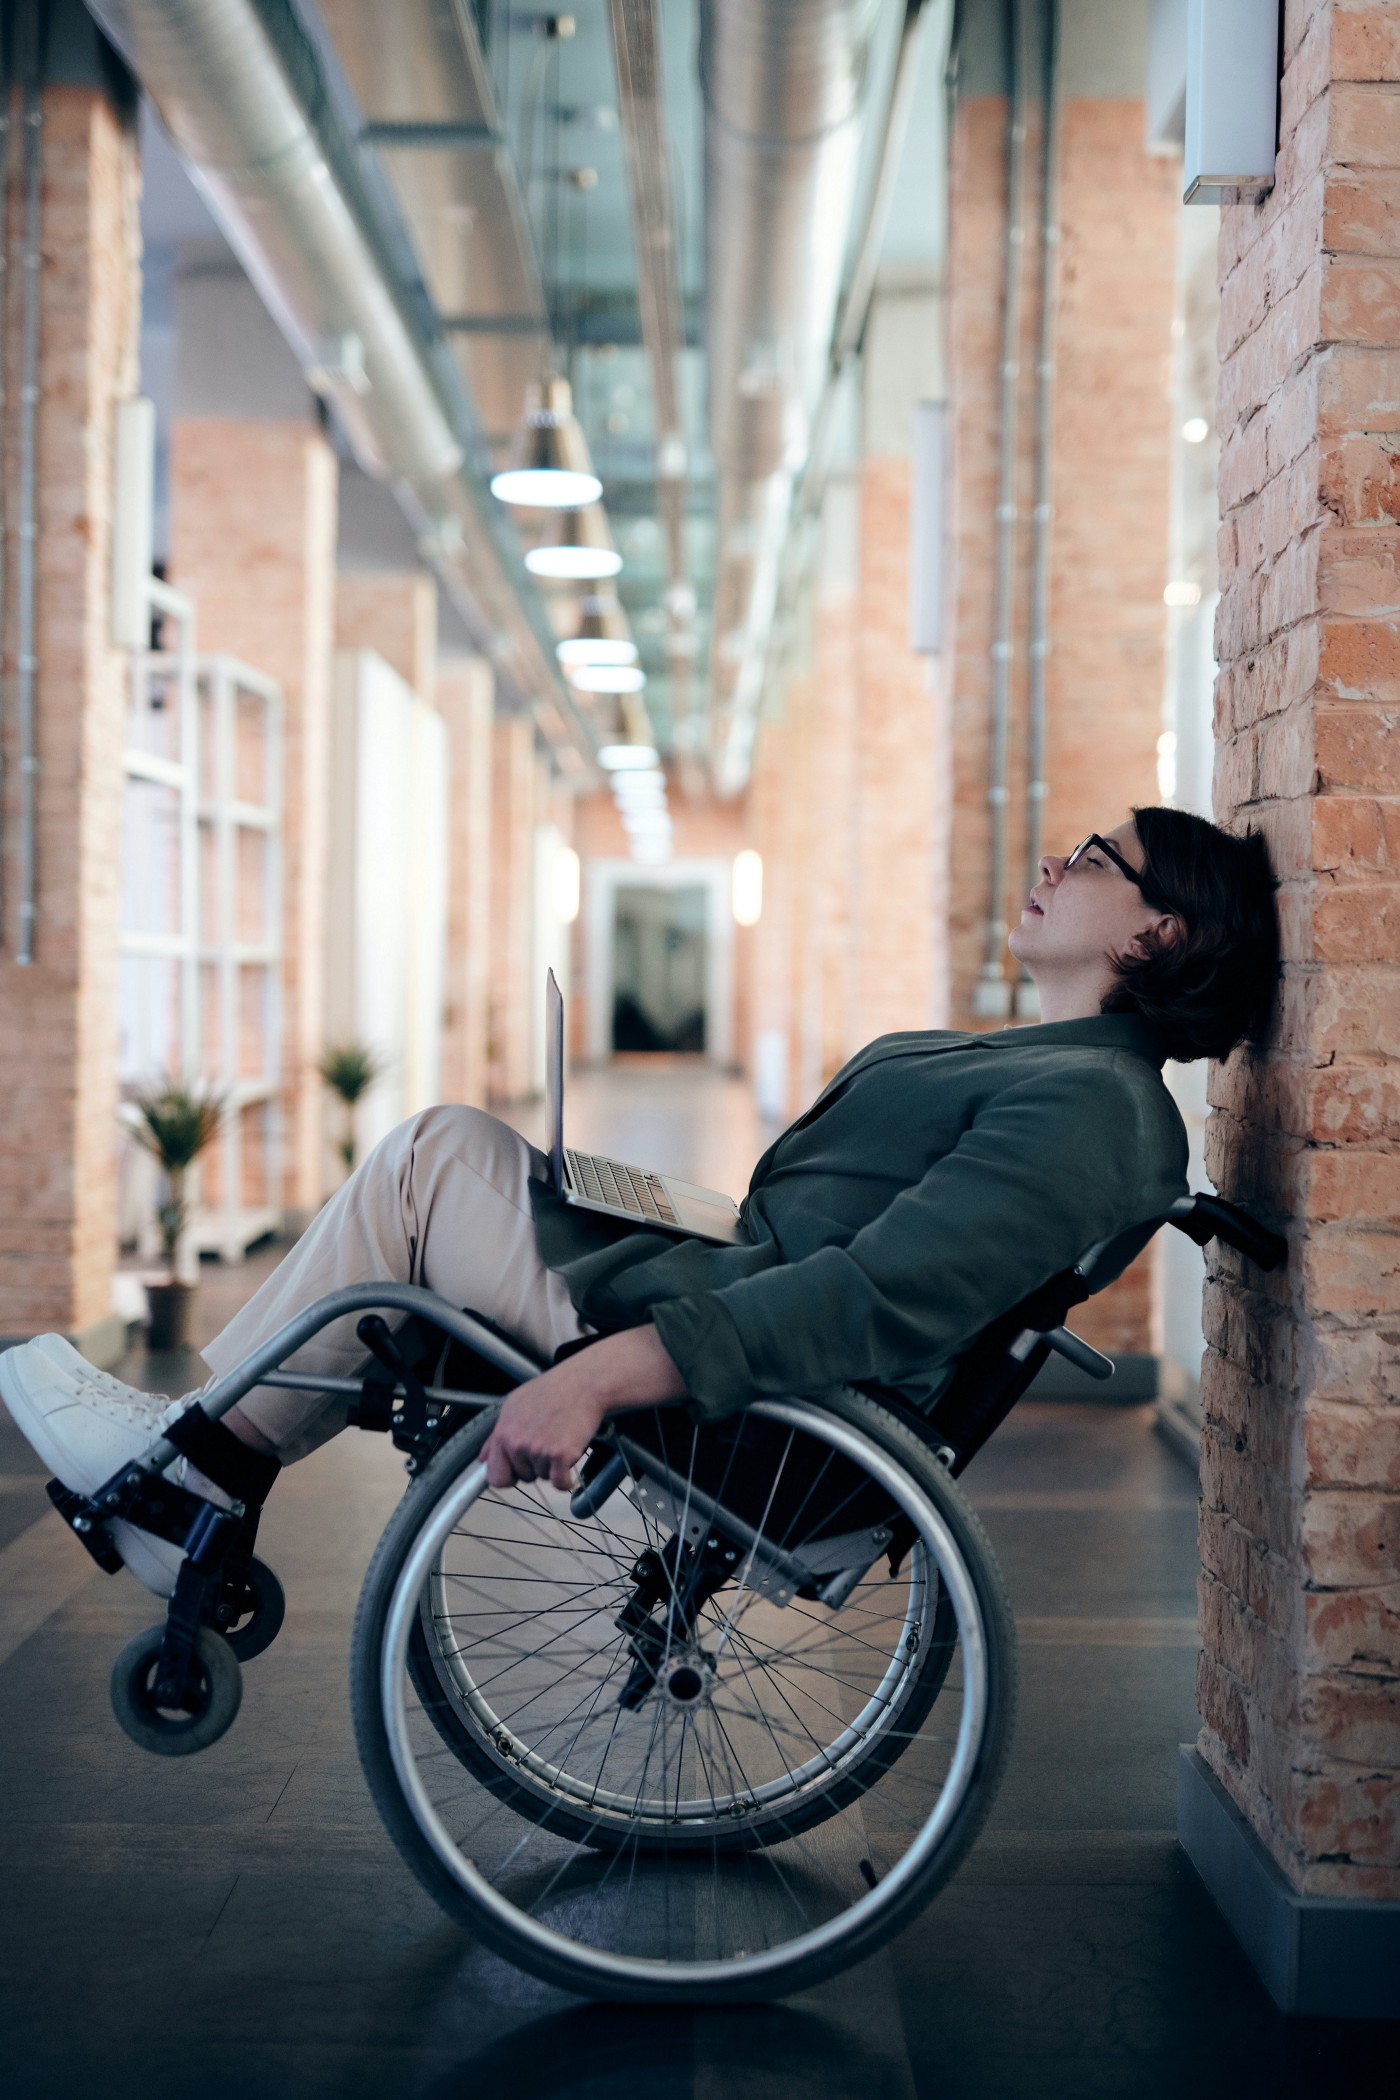 A woman in a wheelchair is leaning back against a wall in this photo